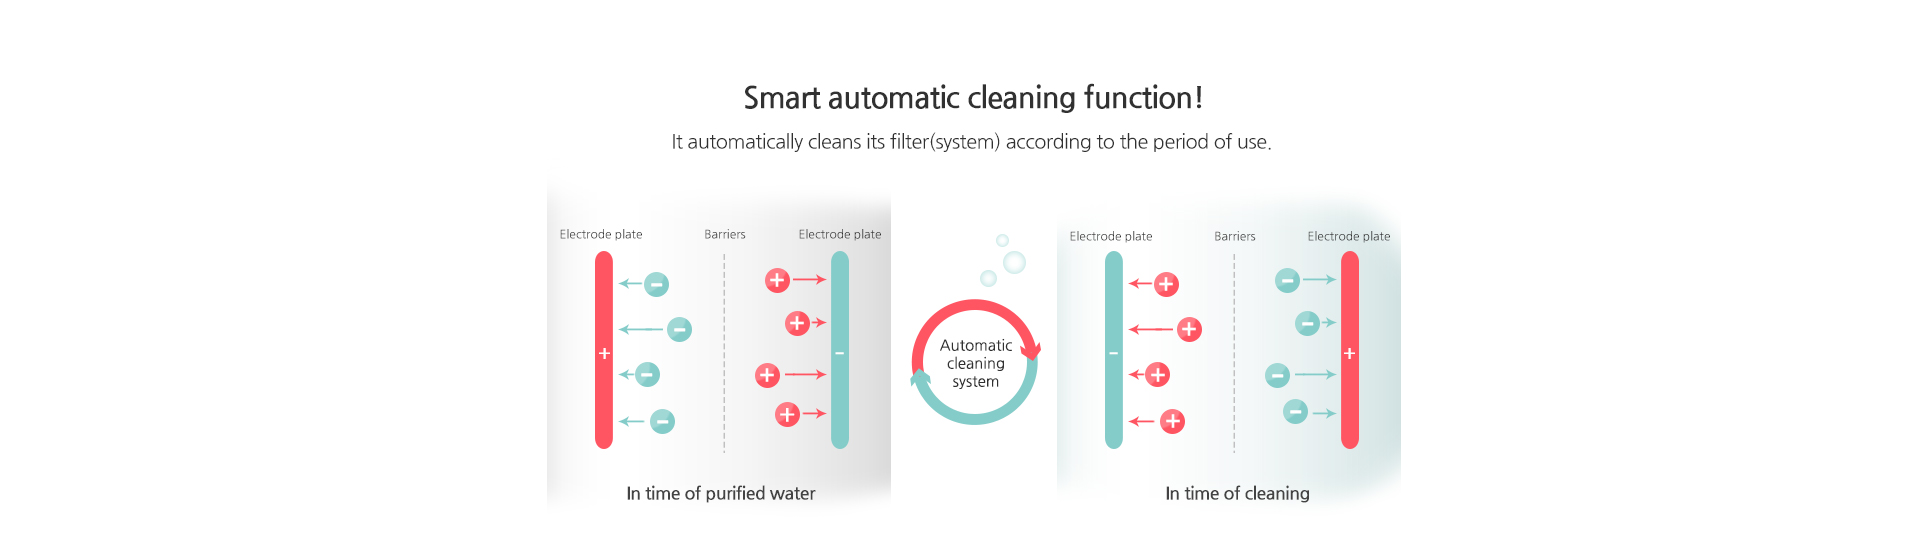 Smart automatic cleaning function!It automatically cleans its filter(system) according to the period of use.